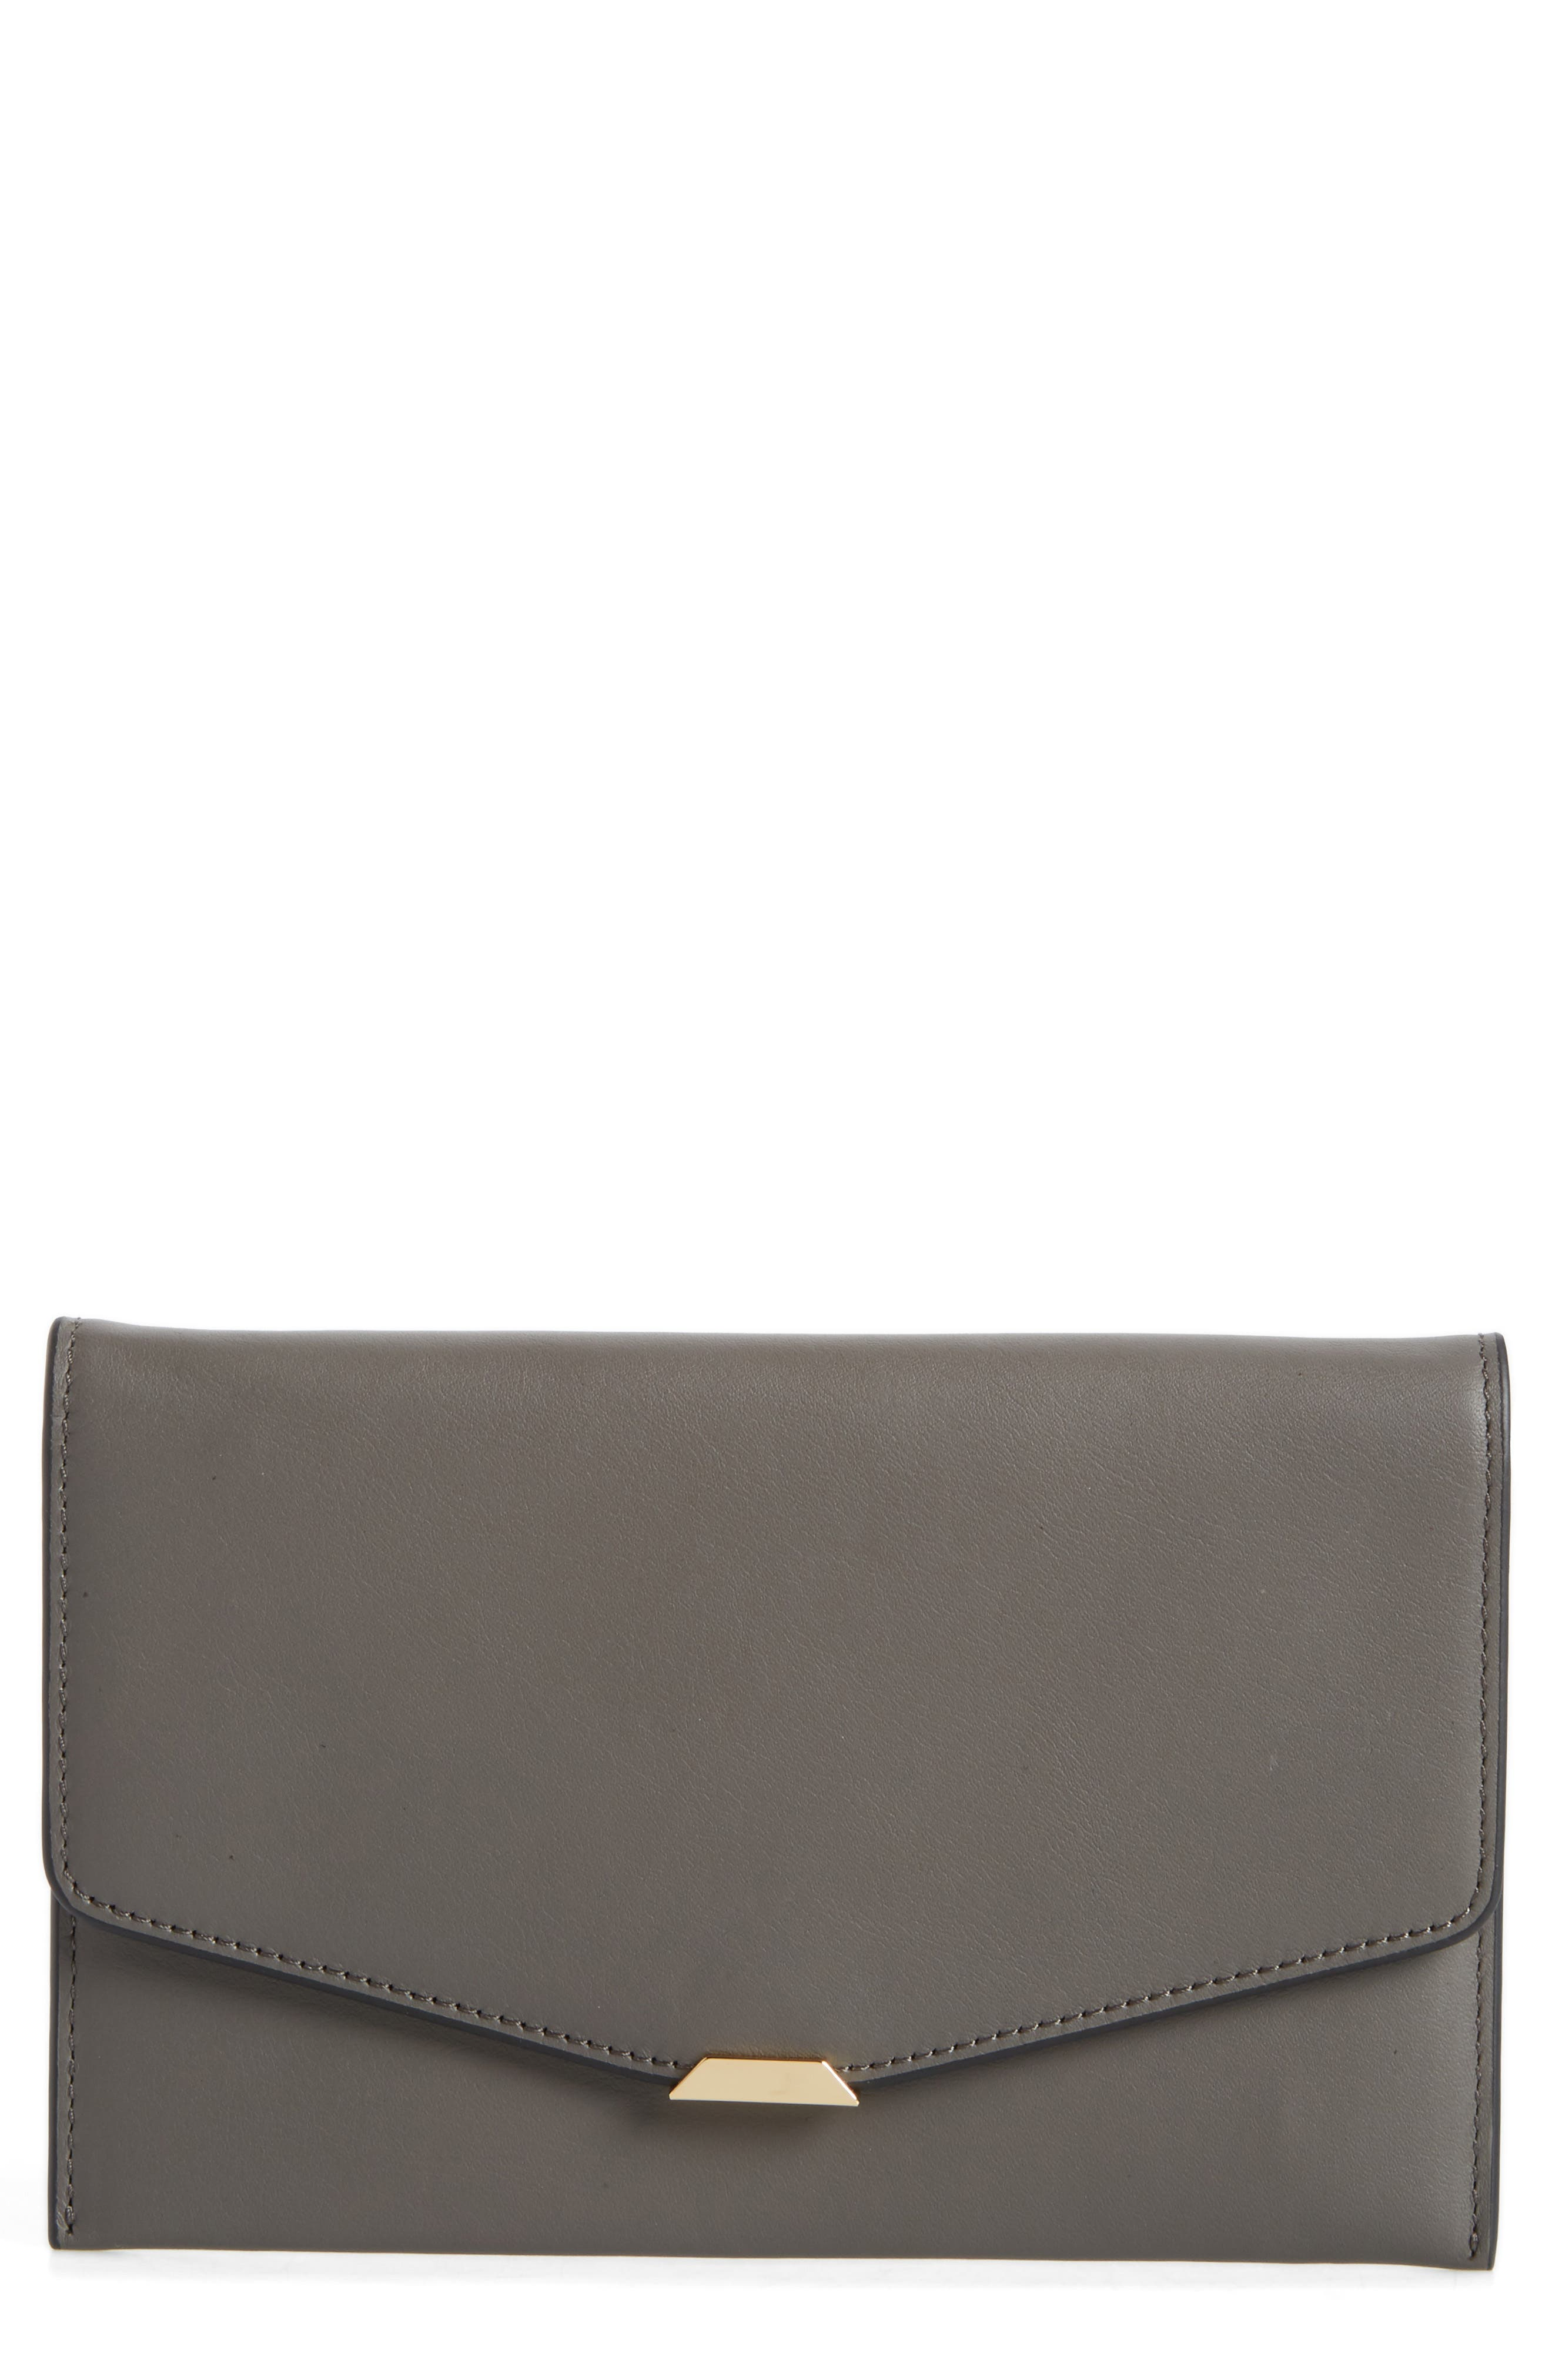 Vince Camuto Ebert Leather Flap Wallet (Nordstrom Exclusive)